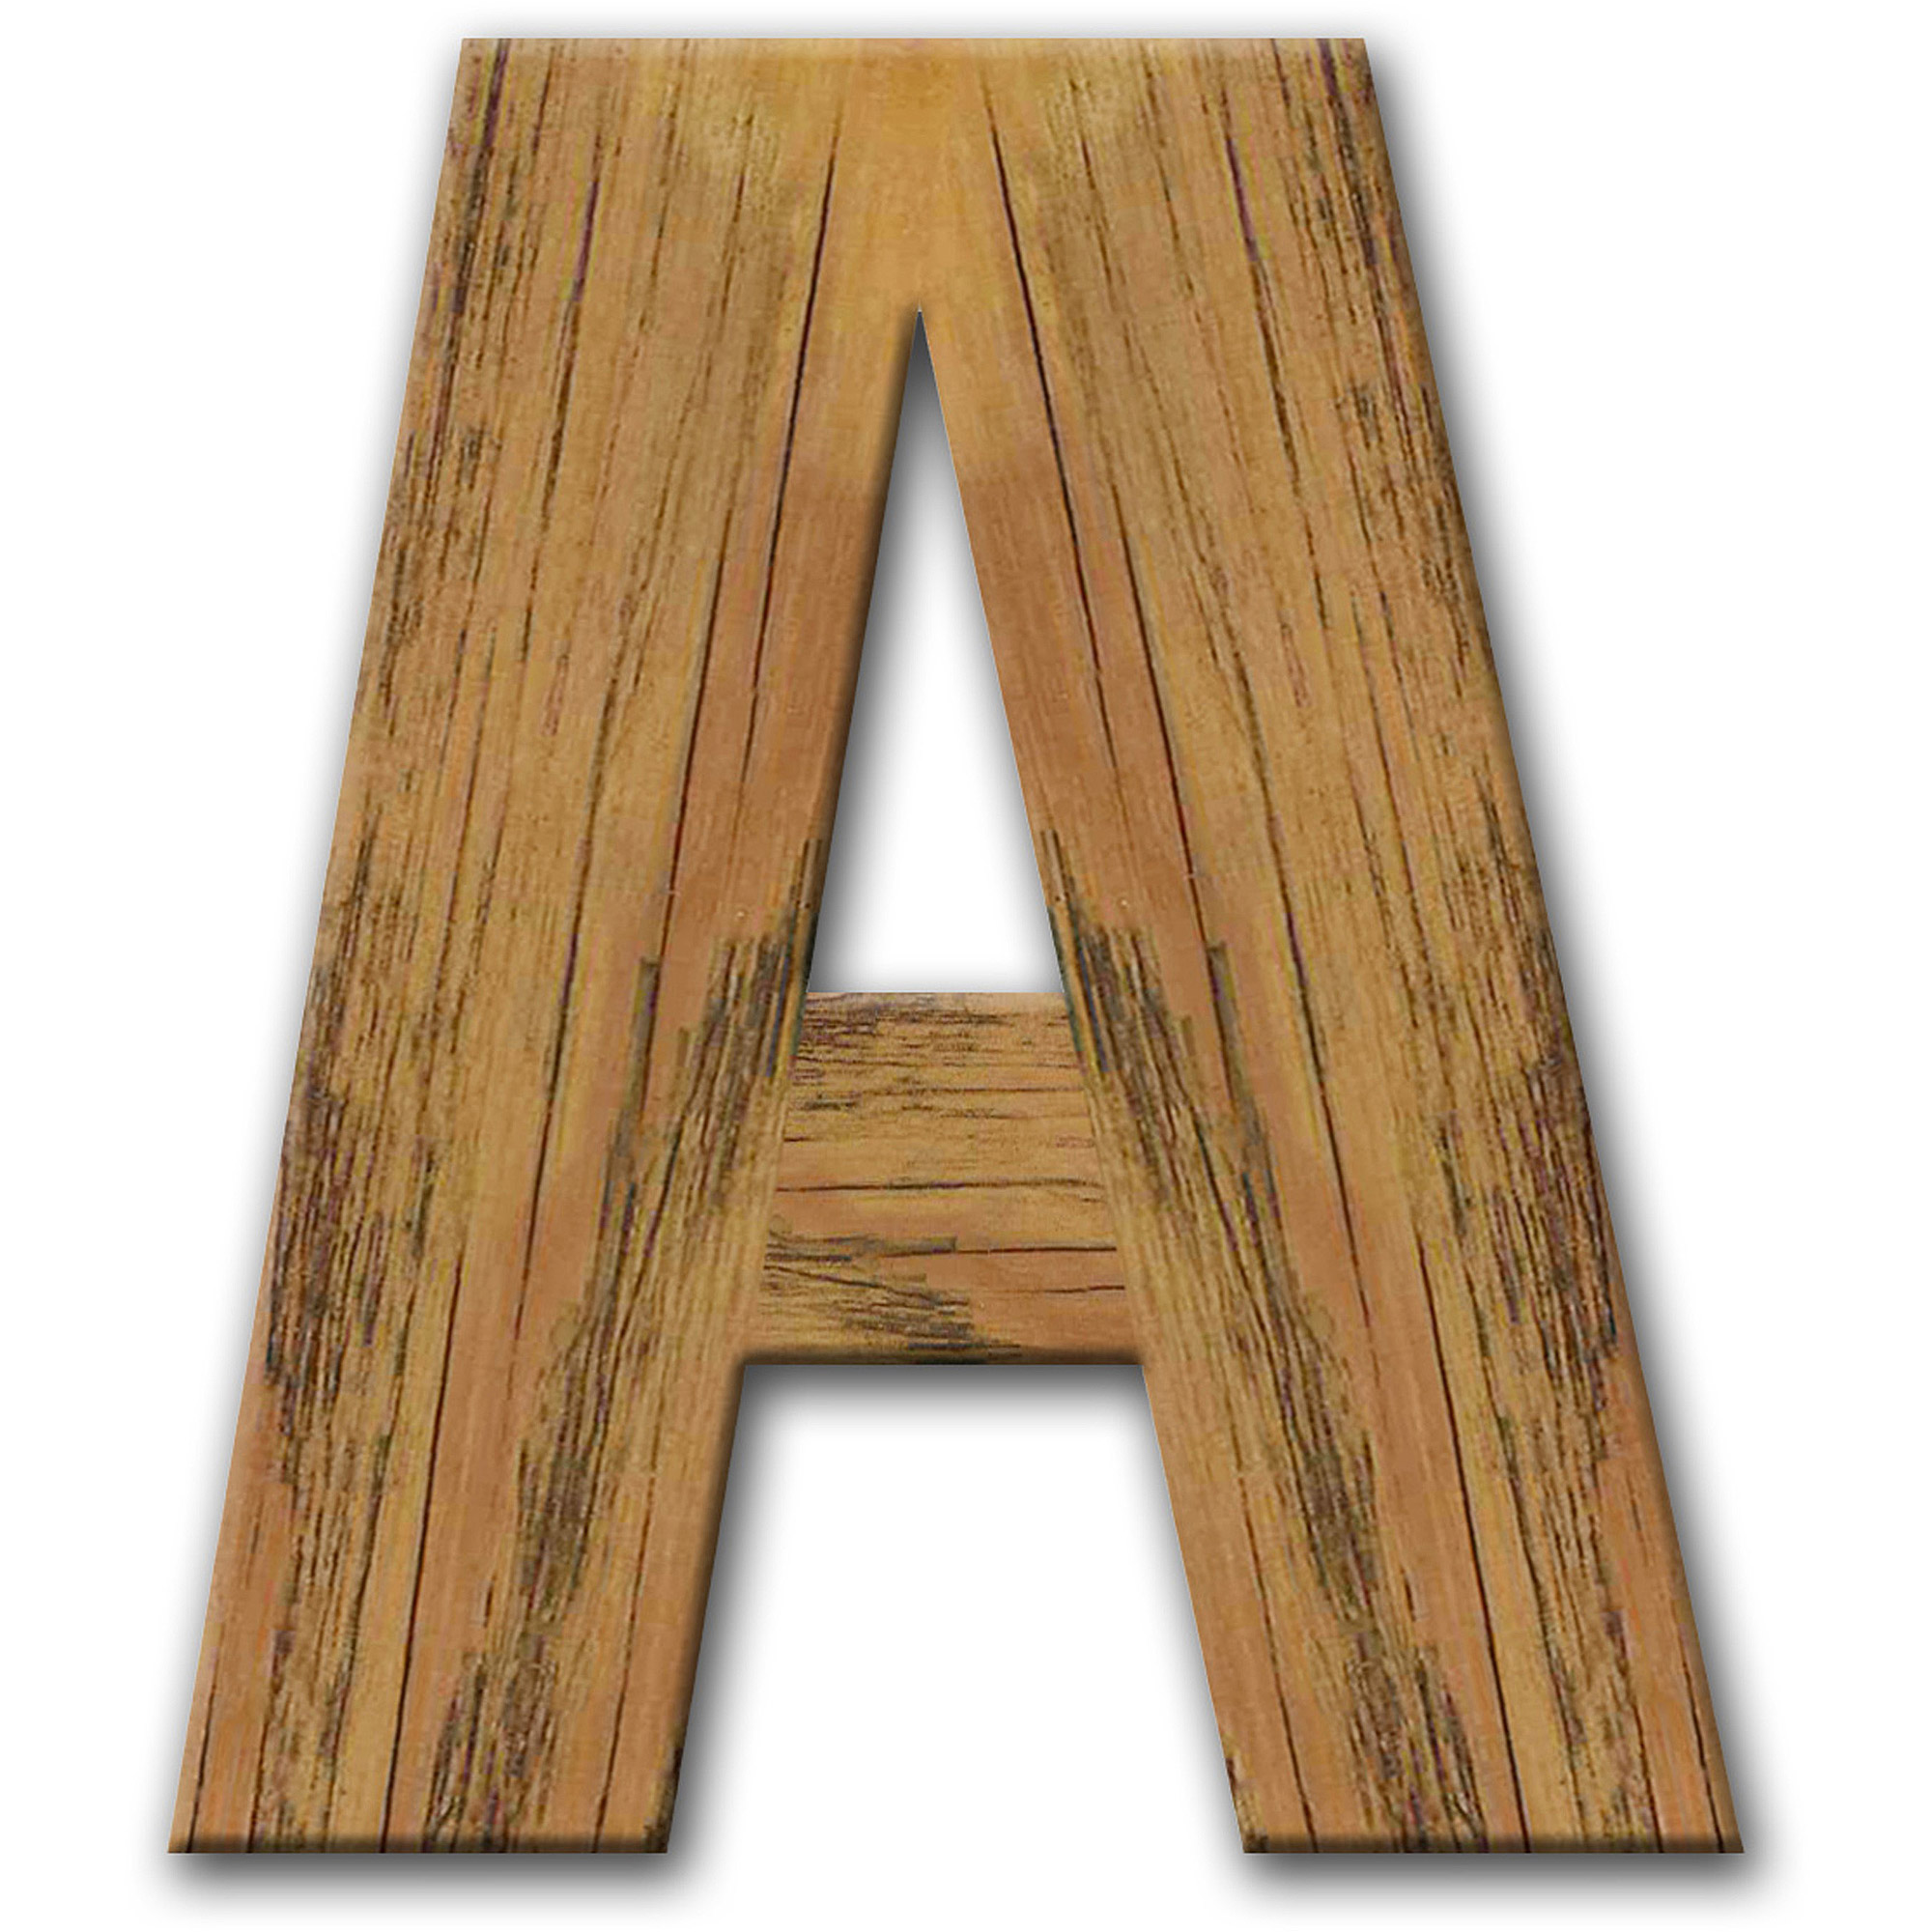 Reclaimed Personalized Monogram Letter, Choose Your Initial